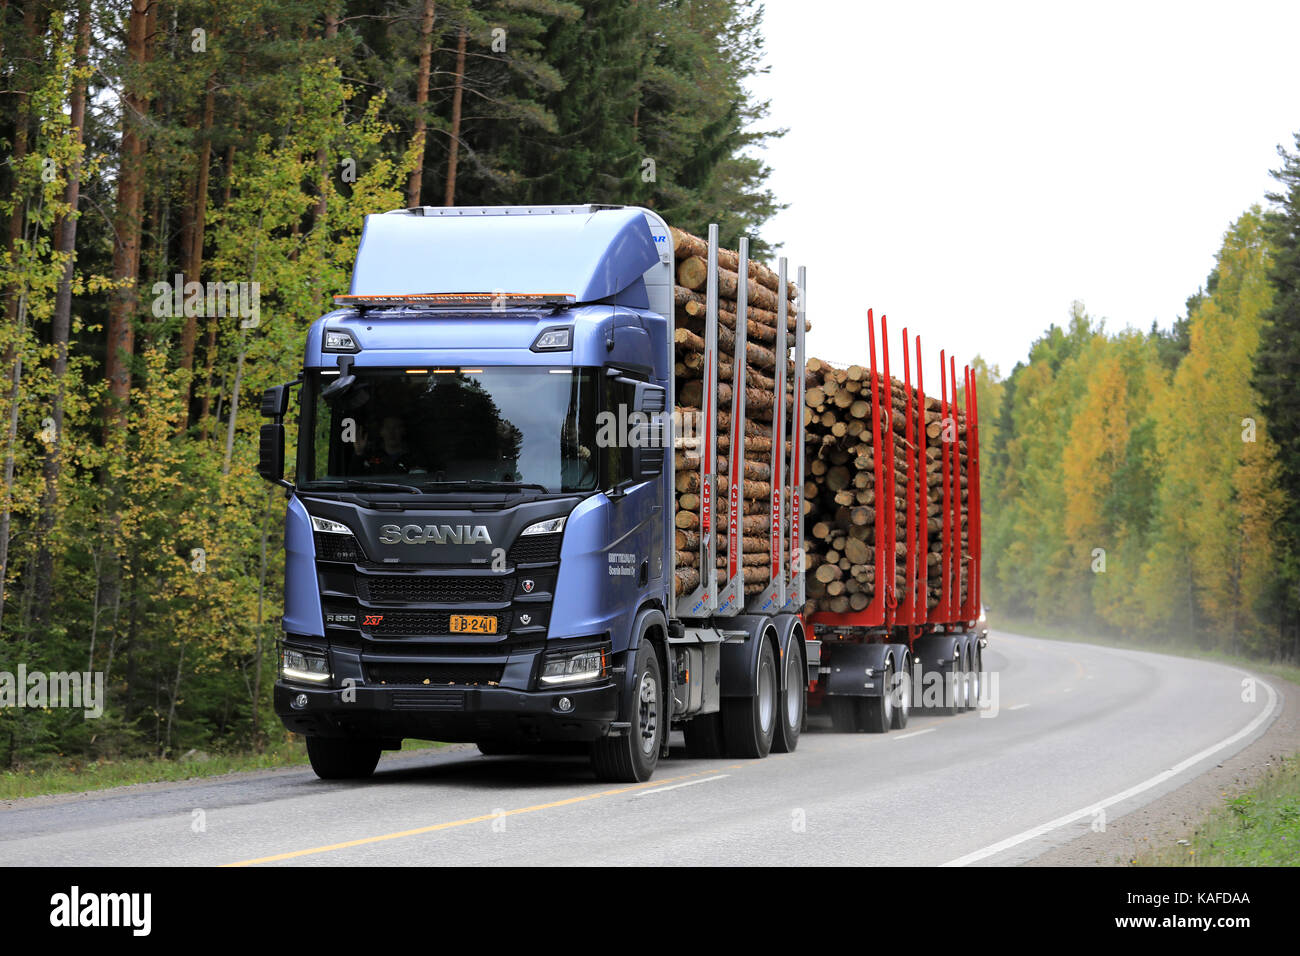 laukaa finland september 22 2017 scania r650 xt logging truck on stock photo royalty free. Black Bedroom Furniture Sets. Home Design Ideas